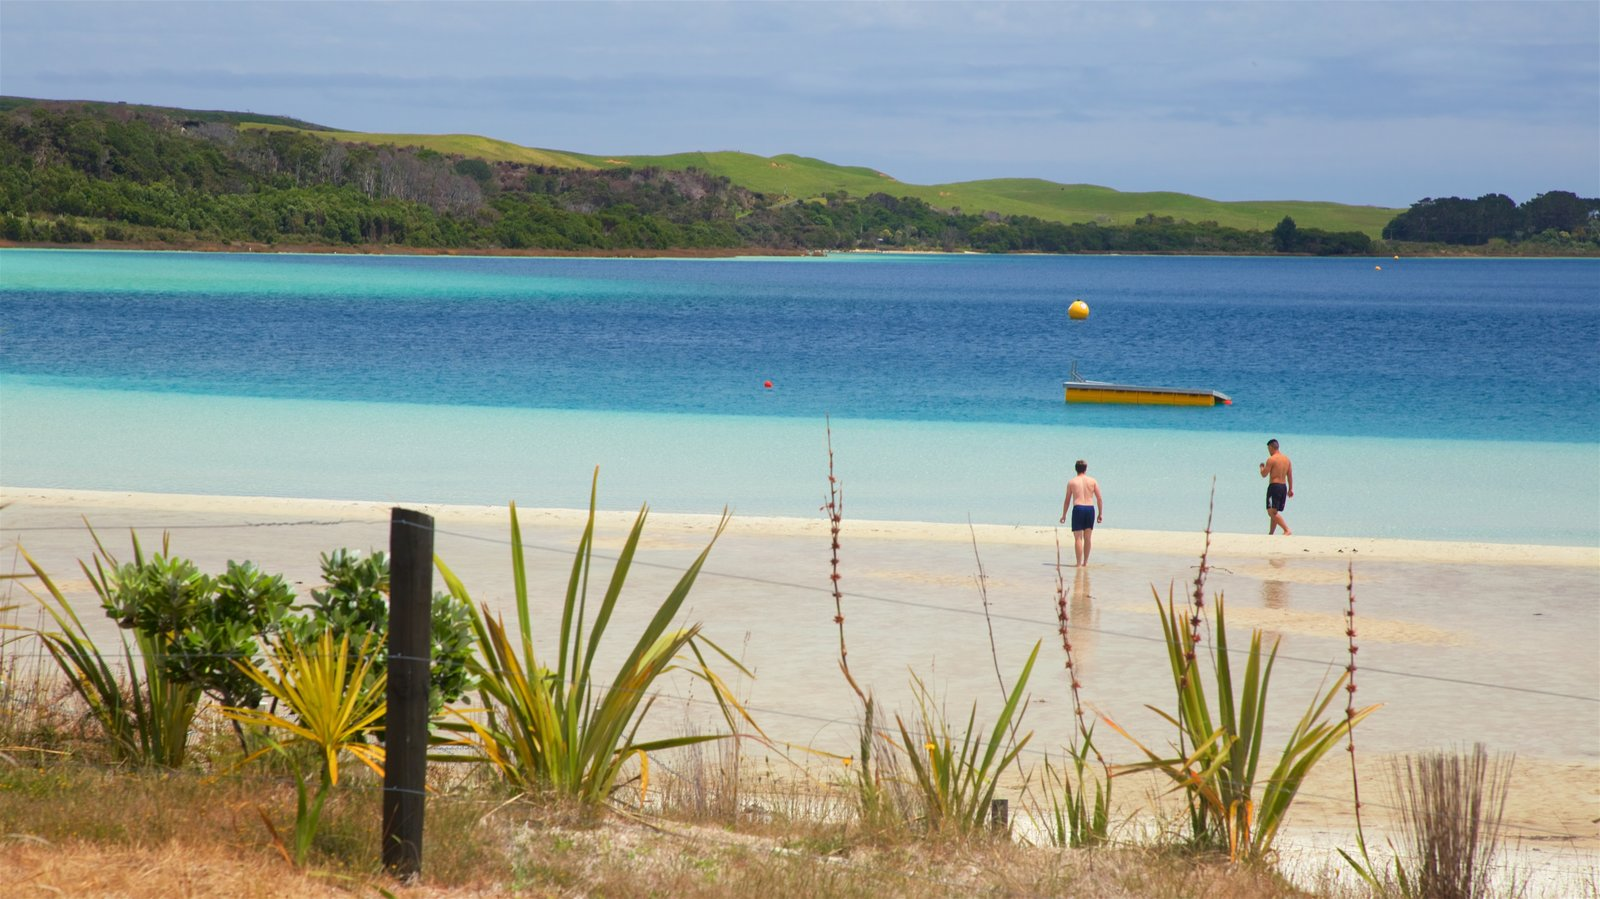 Kai Iwi Lakes showing a bay or harbor and a sandy beach as well as a couple